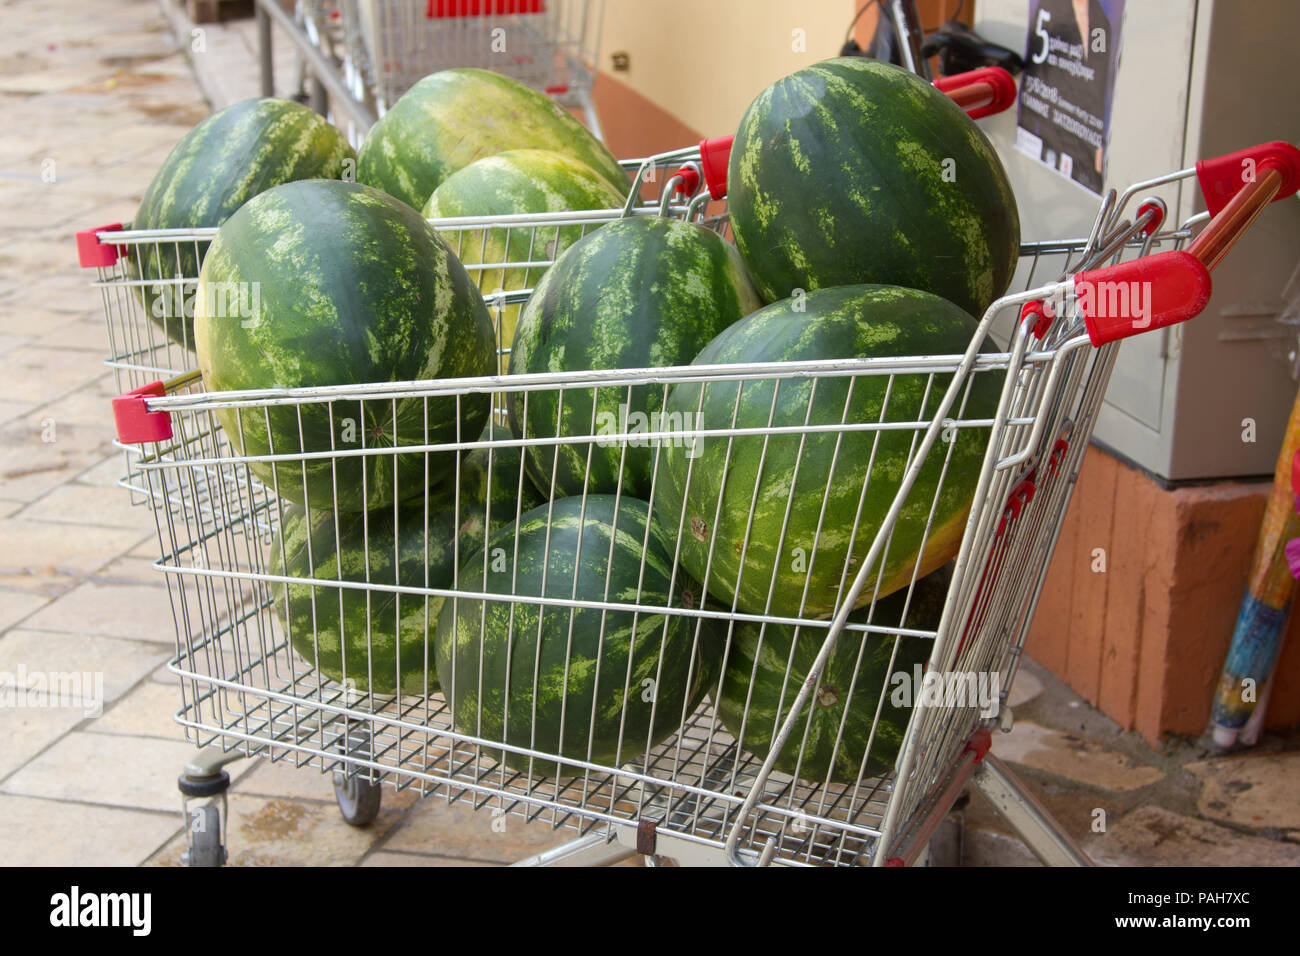 Watermelons in a supermarket trolley - Stock Image